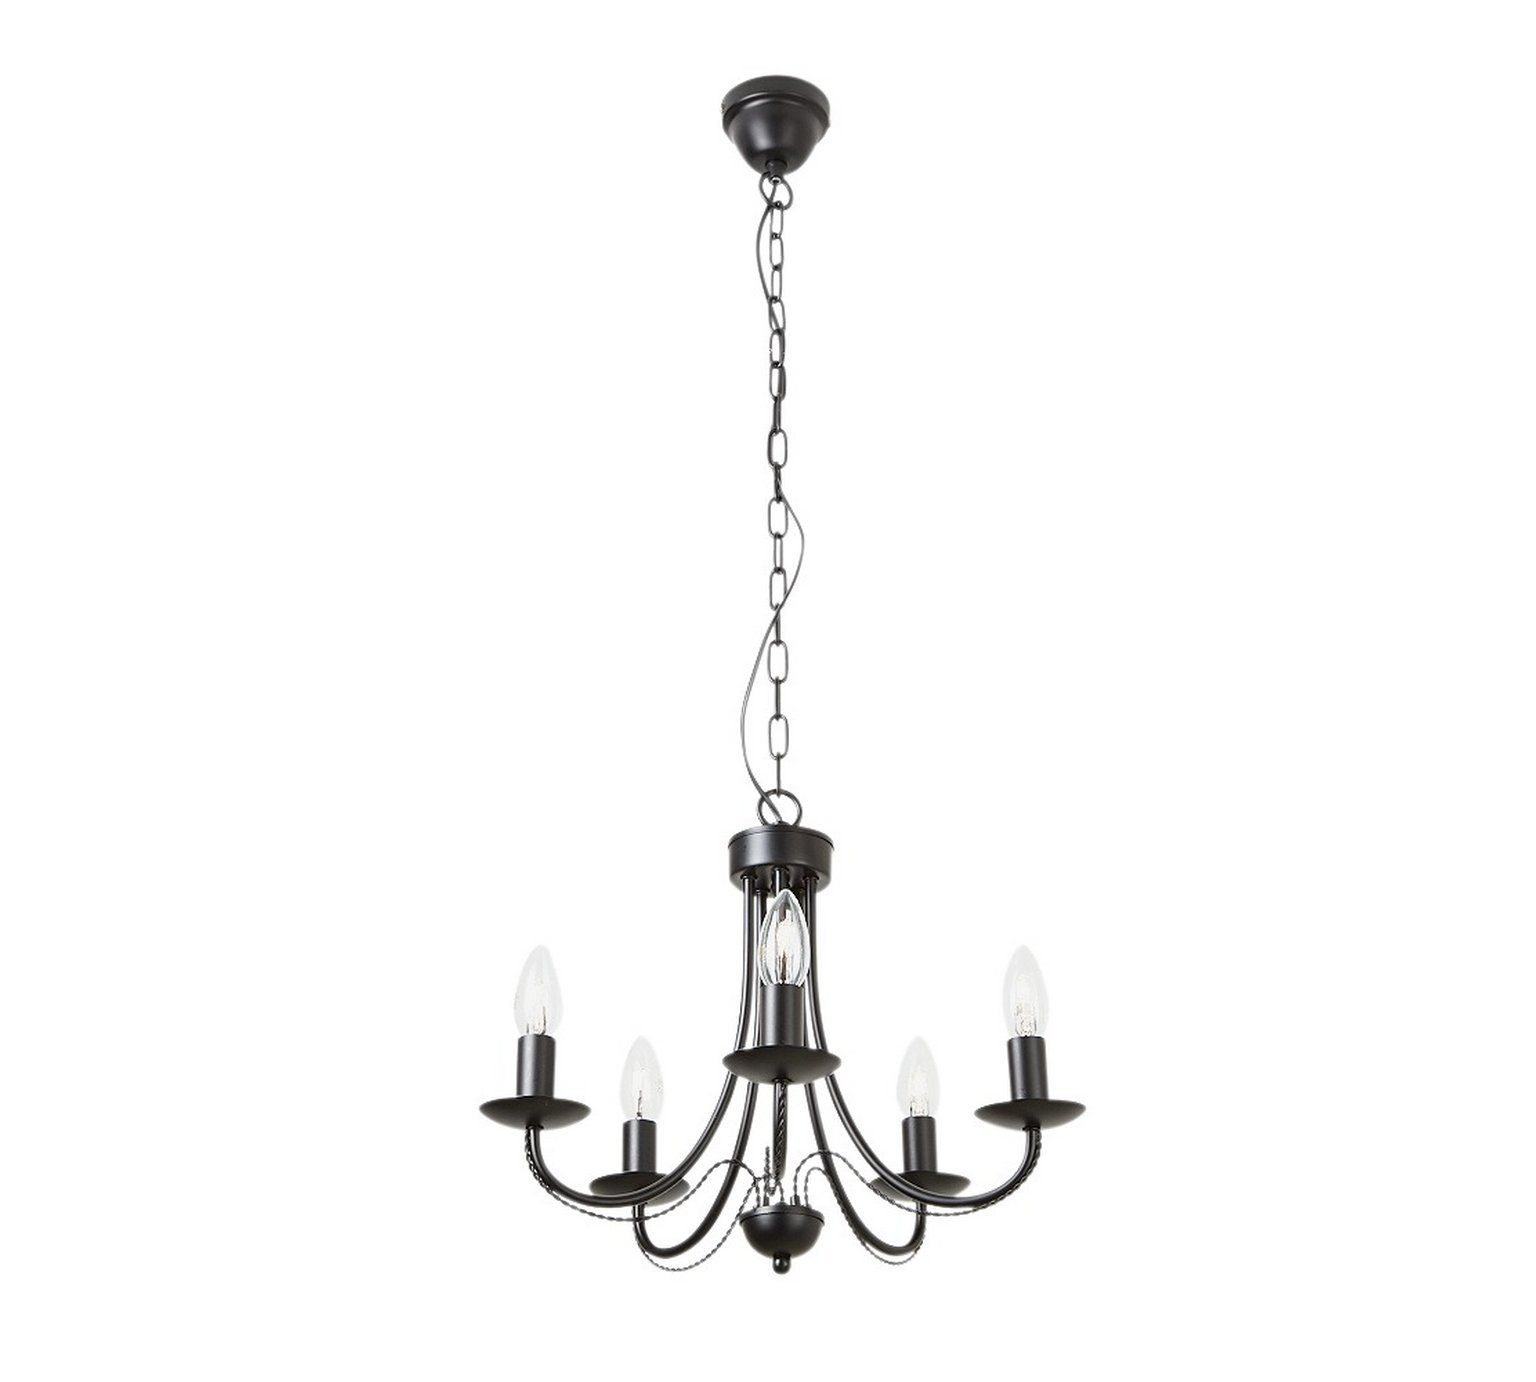 Buy collection twirl 5 light twist chandelier black at argos buy collection twirl 5 light twist chandelier black at argos aloadofball